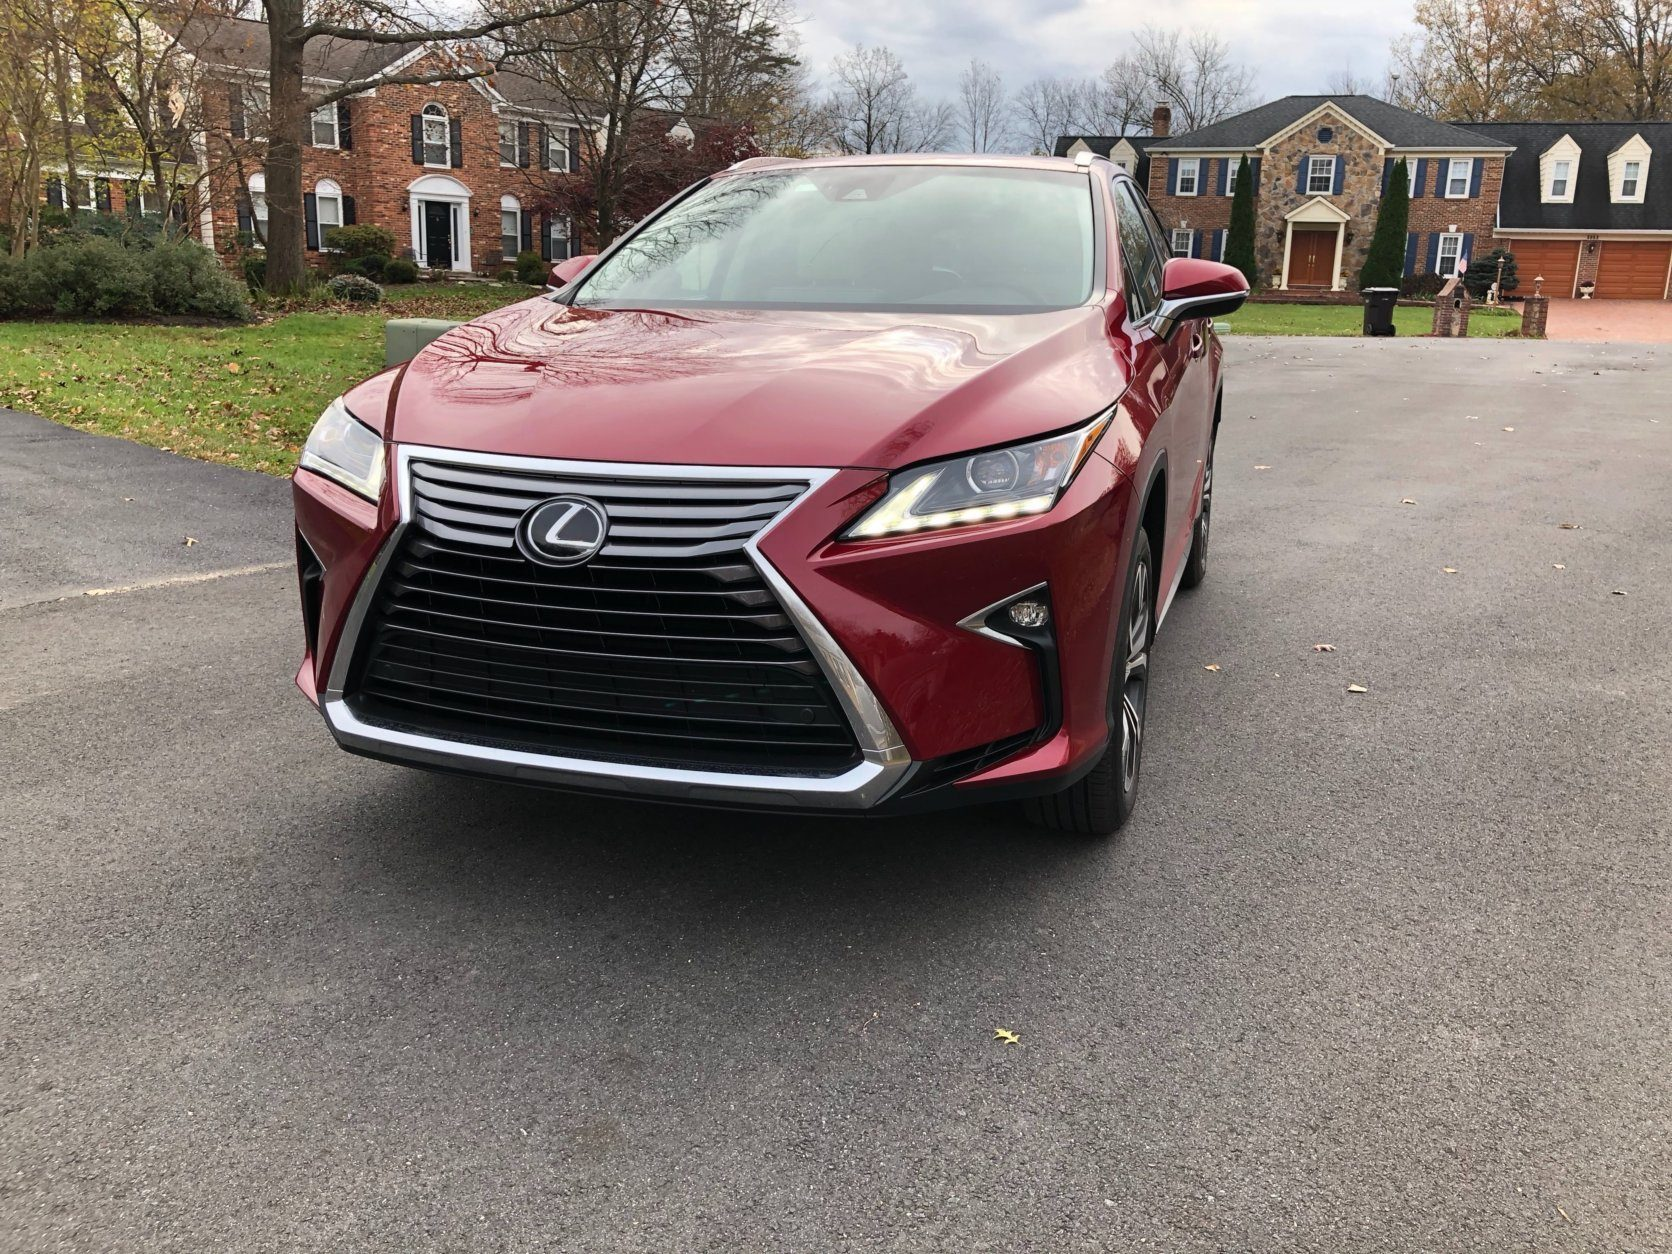 <p>The bigger Lexus has a grill with horizontal bars.</p>